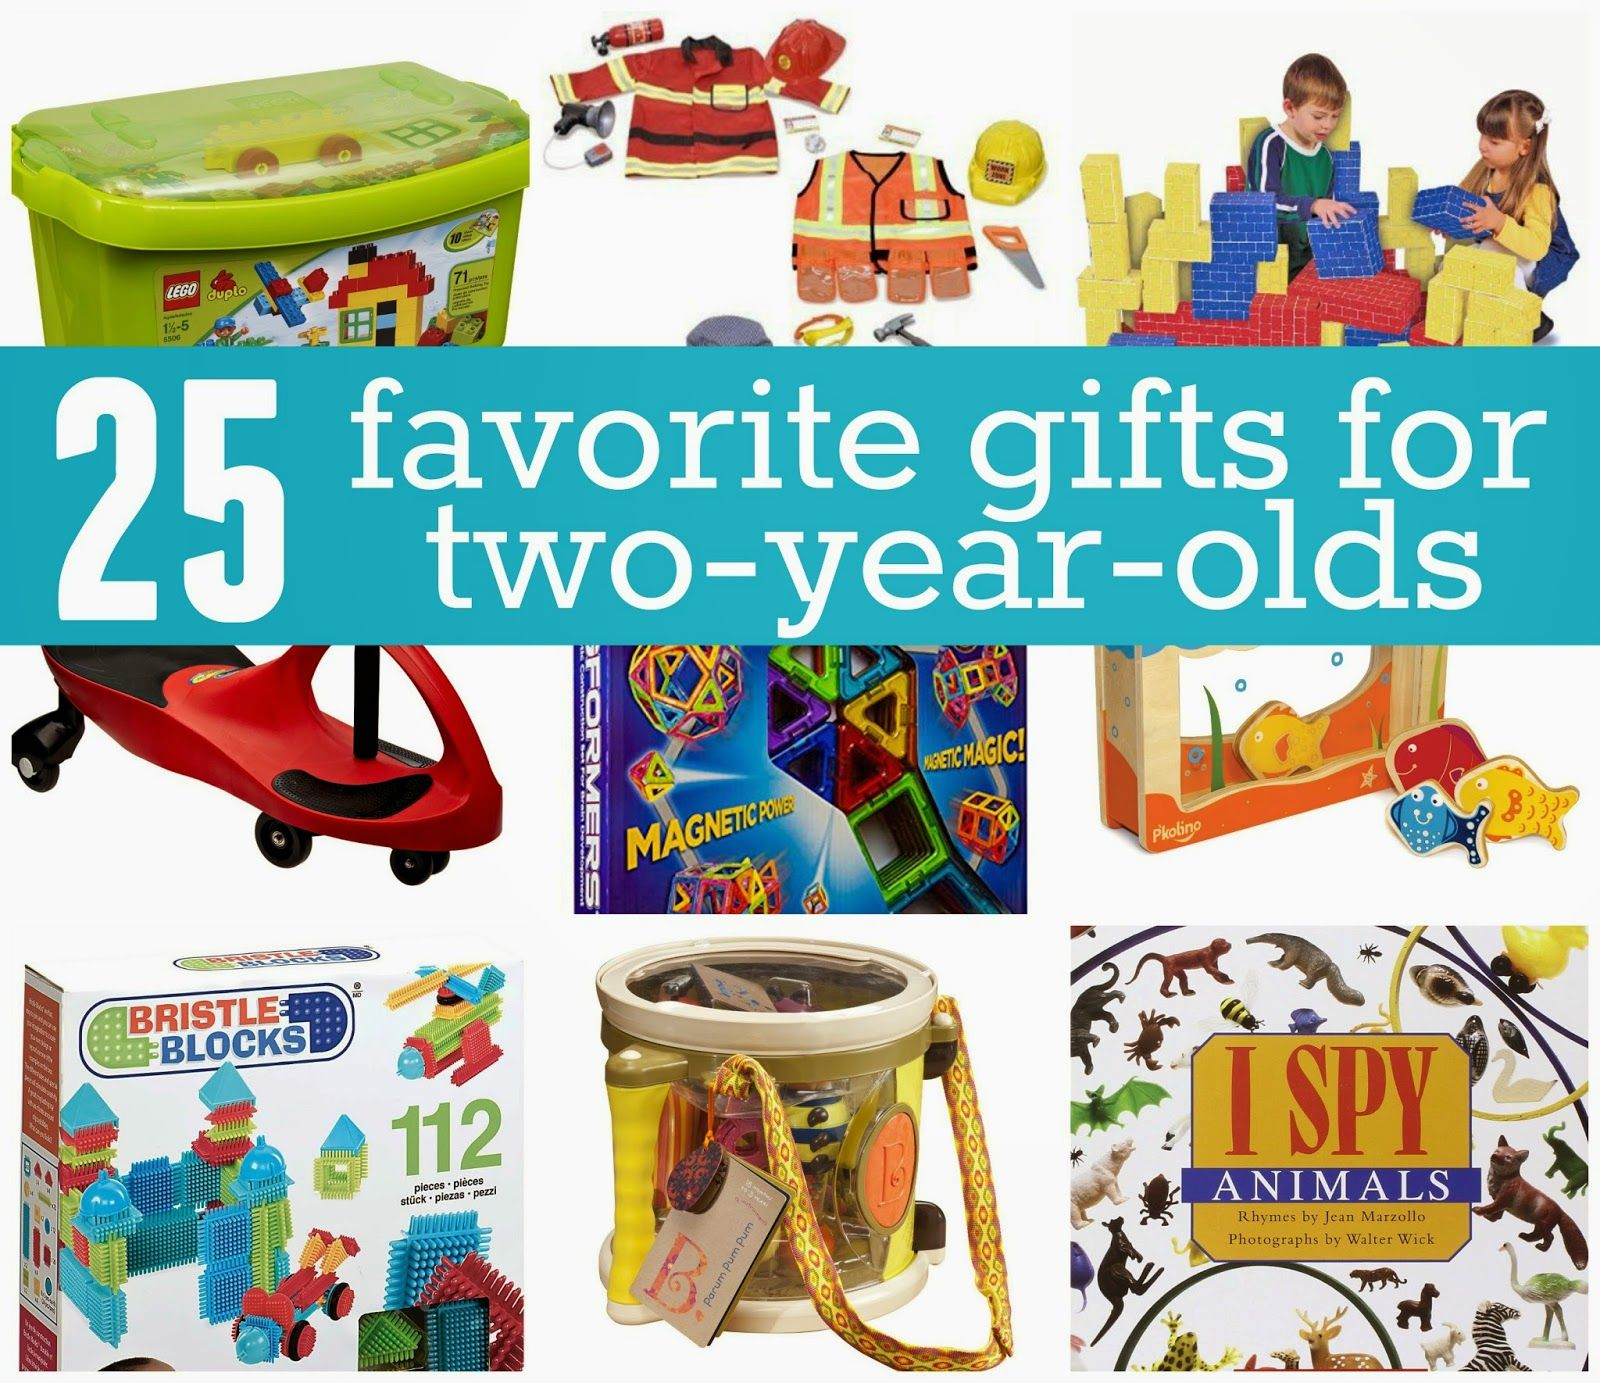 Toys For 2 Year Olds For Girls : Favorite gifts for year olds gender gift and babies